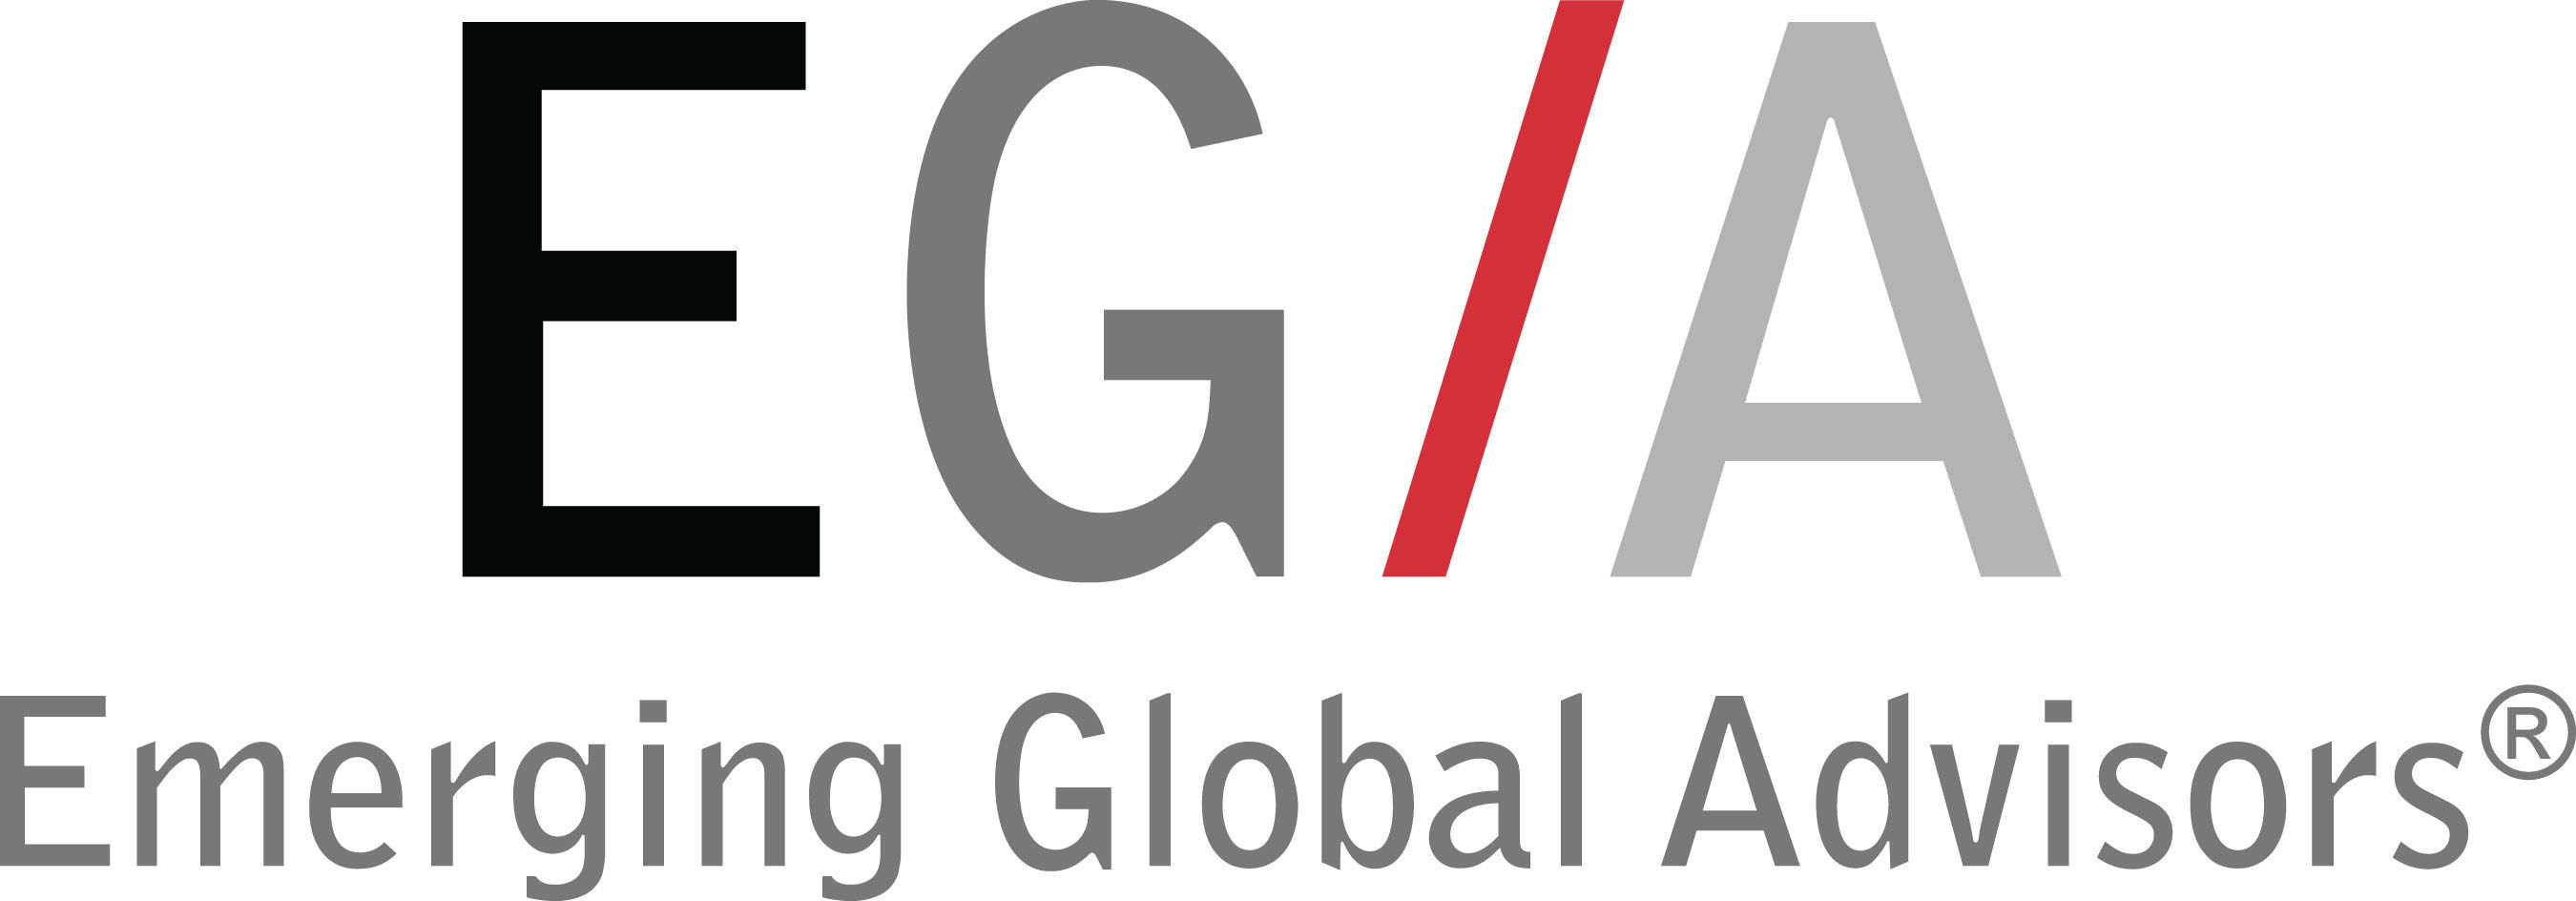 Emerging Global Advisors (EGA) is a leading provider of strategic beta portfolios in emerging markets and we ...